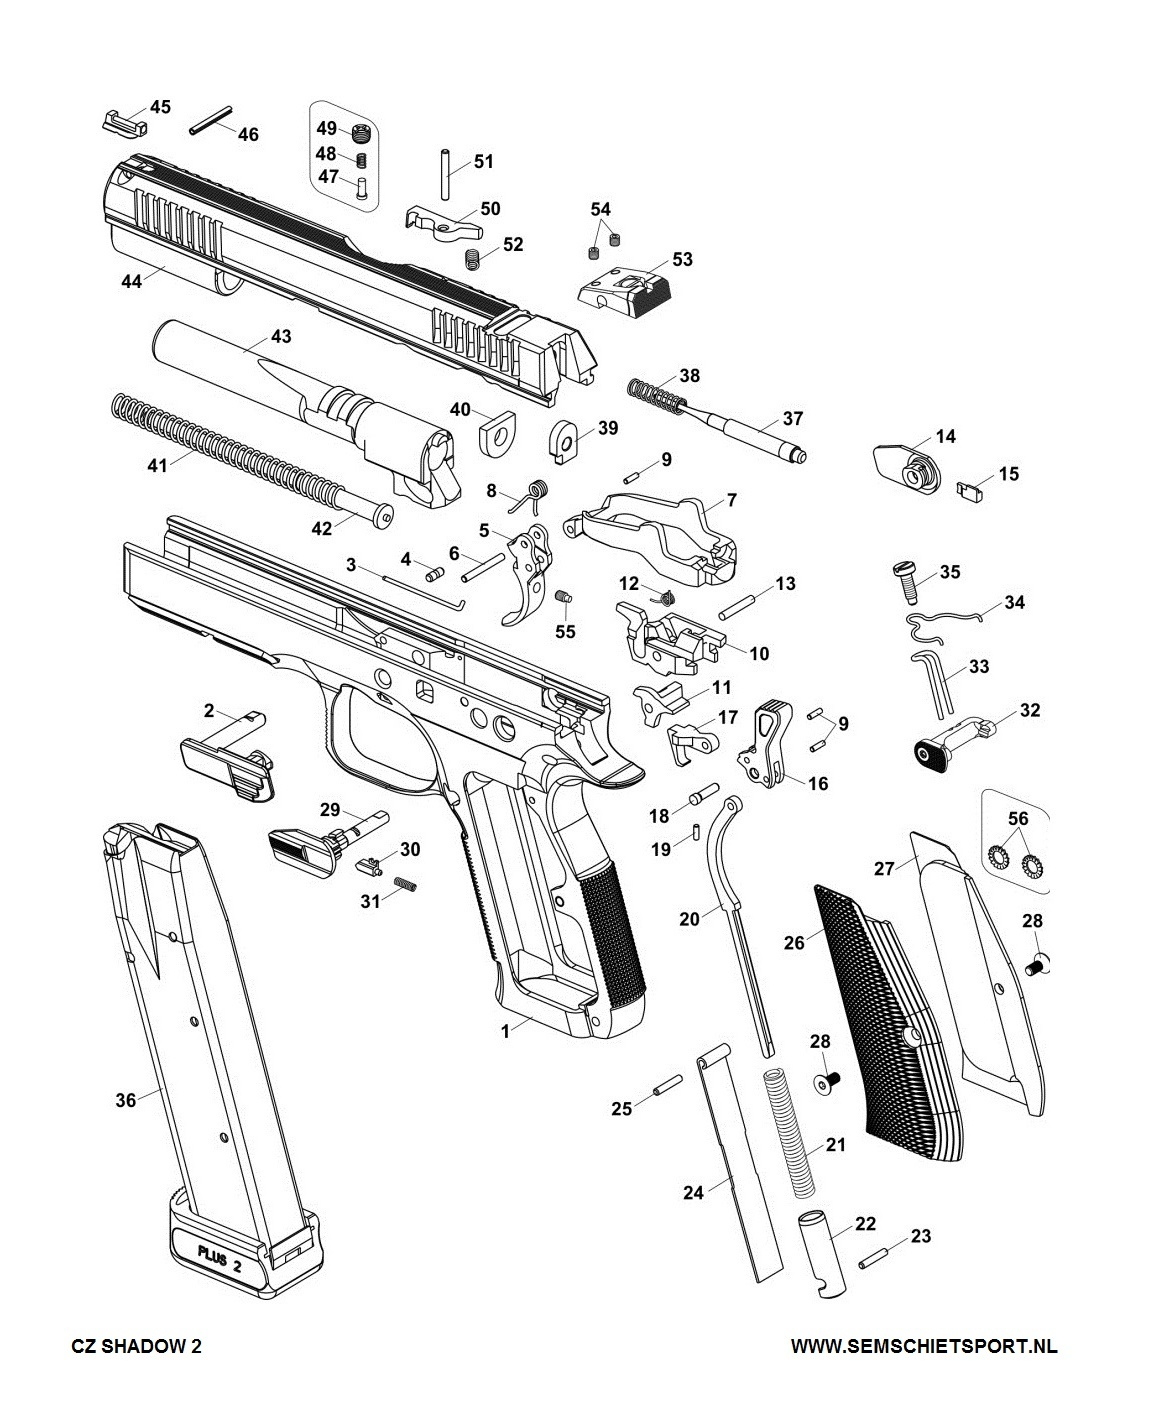 Exploded View CZ SHADOW 2